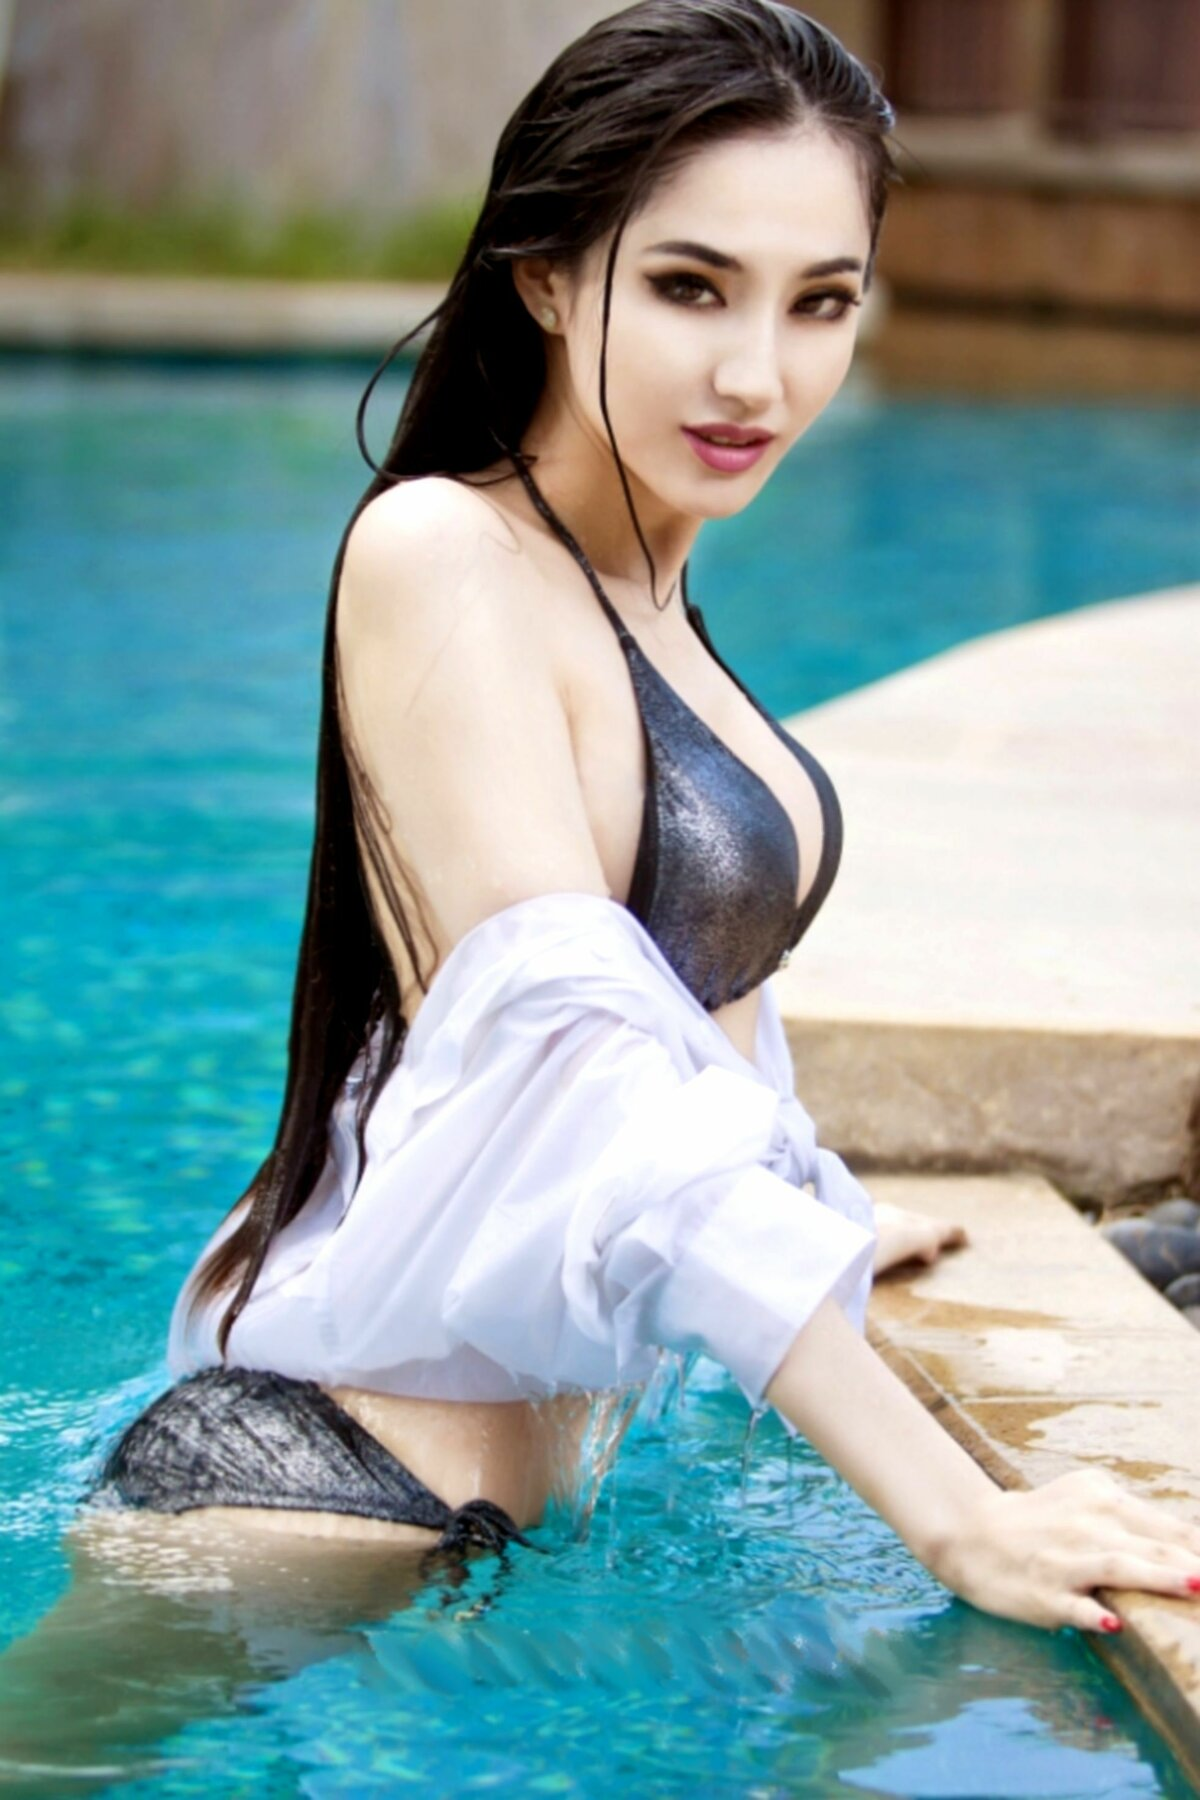 china-hot-hot-nangi-photos-ass-naked